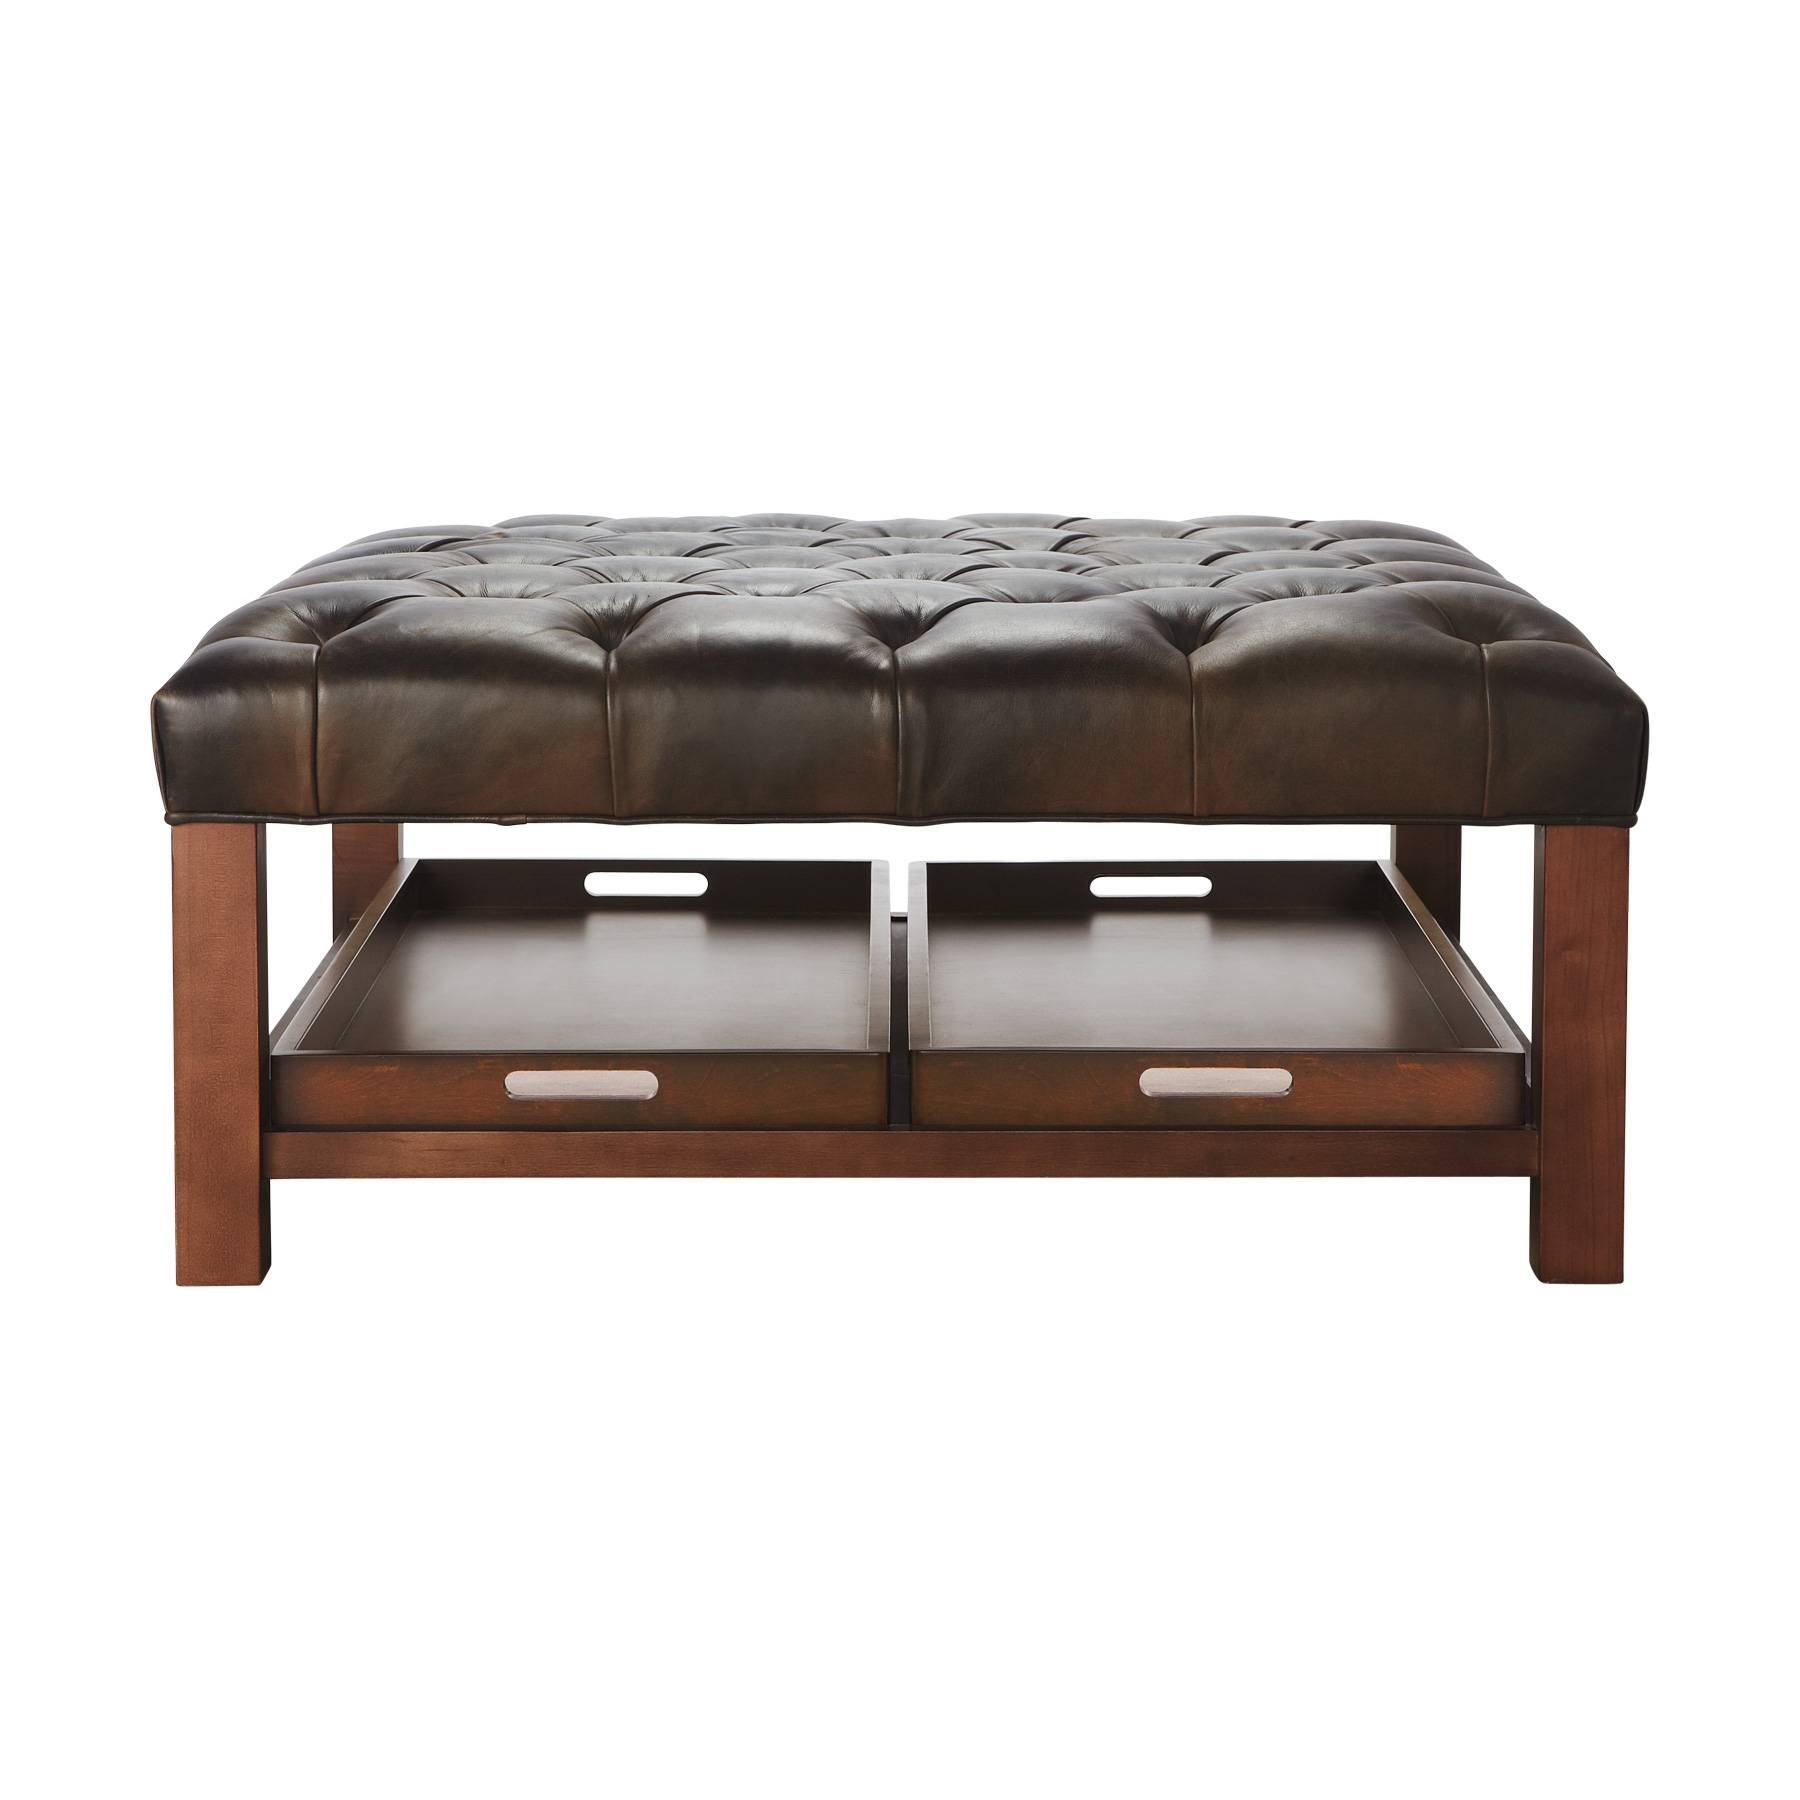 Furniture: Oversized Ottoman Coffee Table For Stylish Living Room within Square Coffee Tables With Storage Cubes (Image 14 of 31)